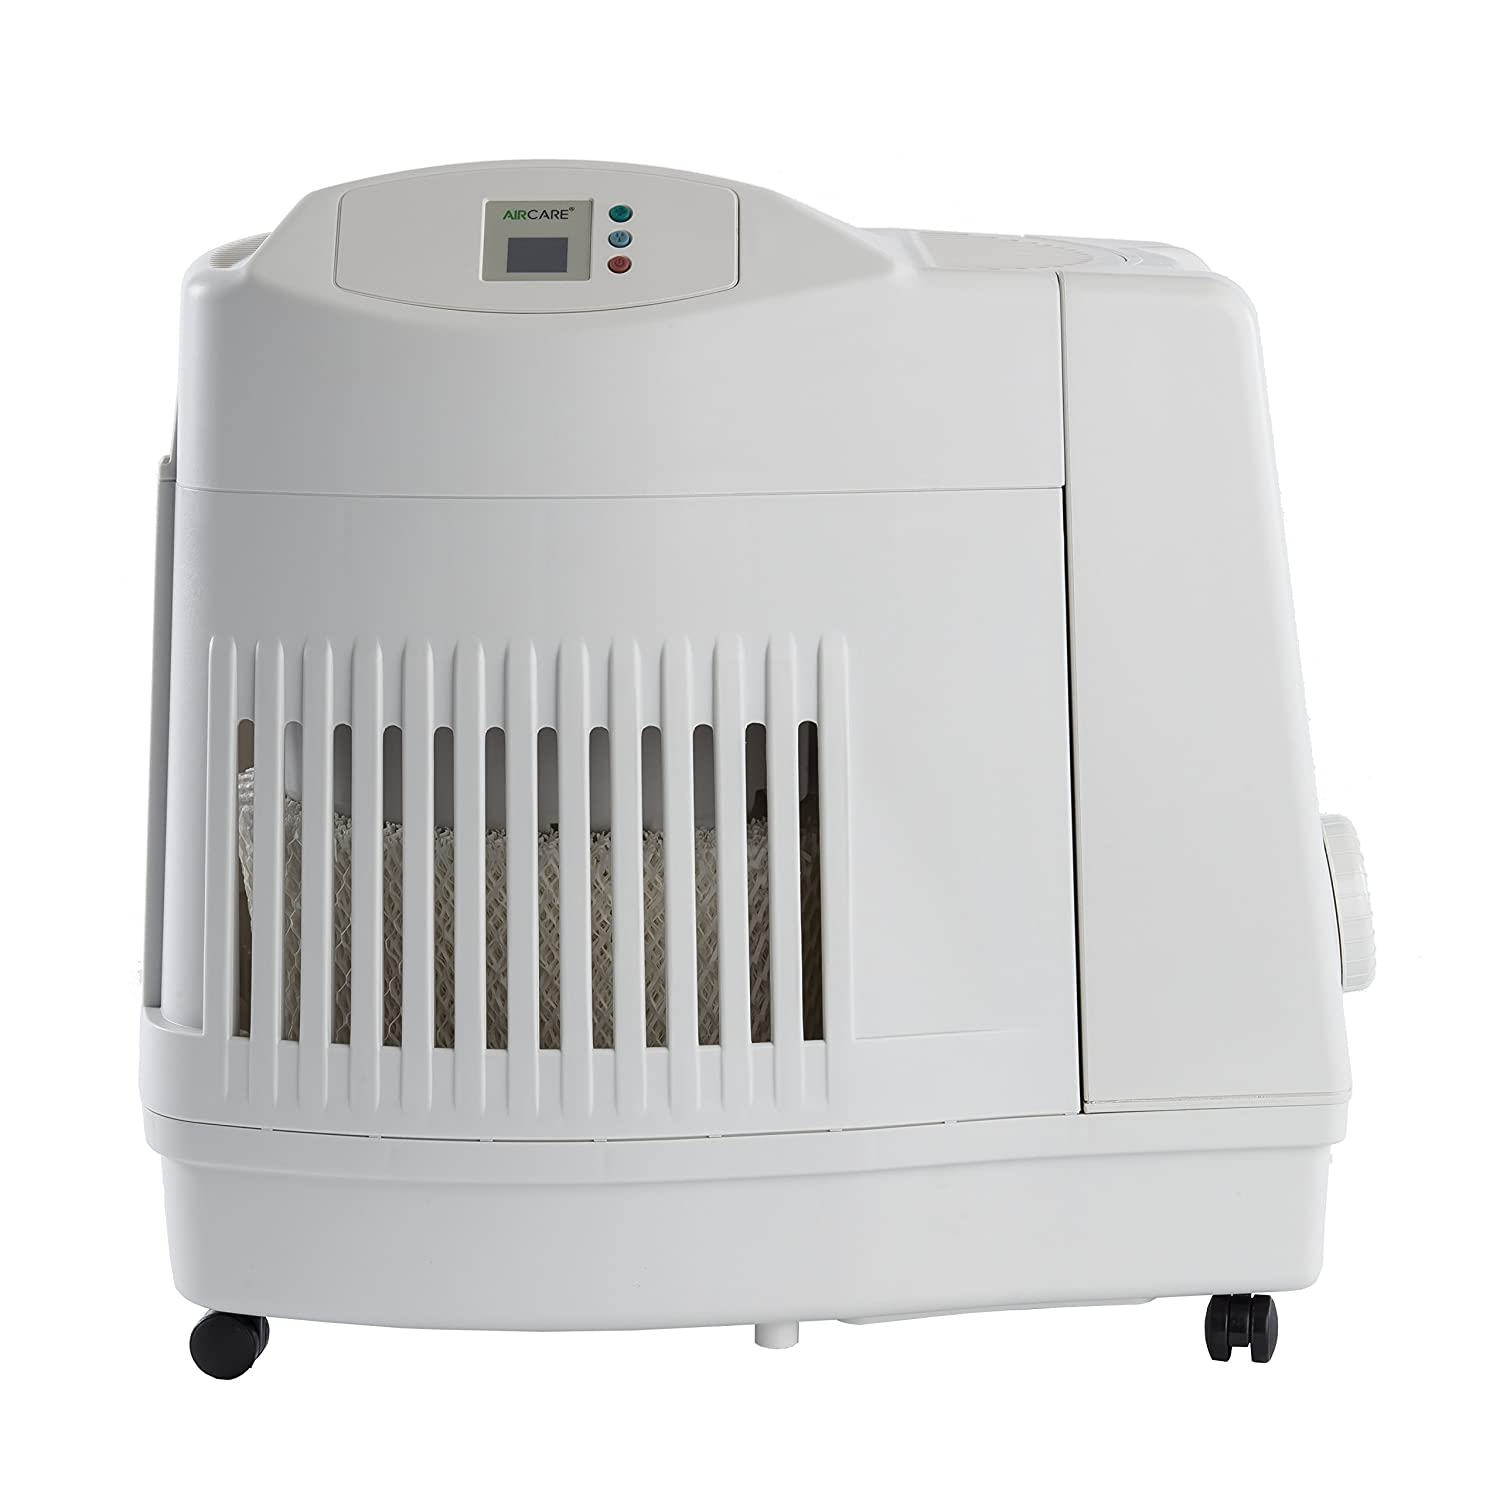 AIRCARE MA1201 Humidifier Review